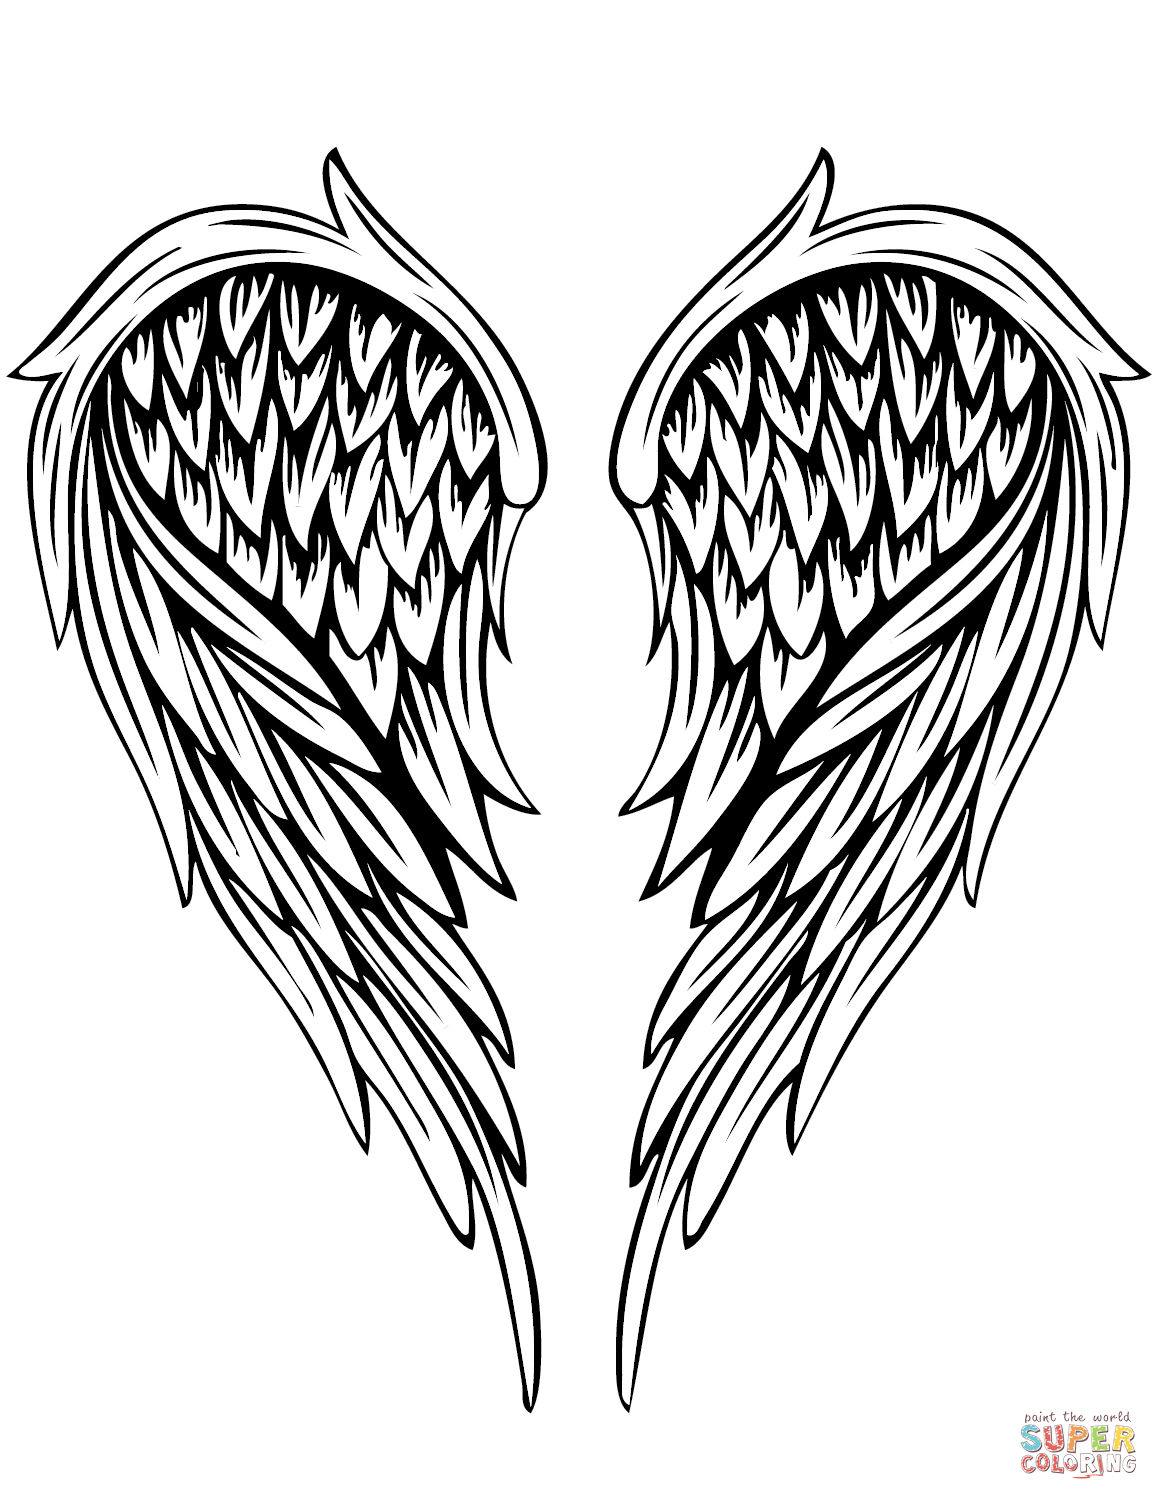 Angel Wings Tattoo Coloring Page | Free Printable Coloring Pages - Angel Wings Template Printable Free